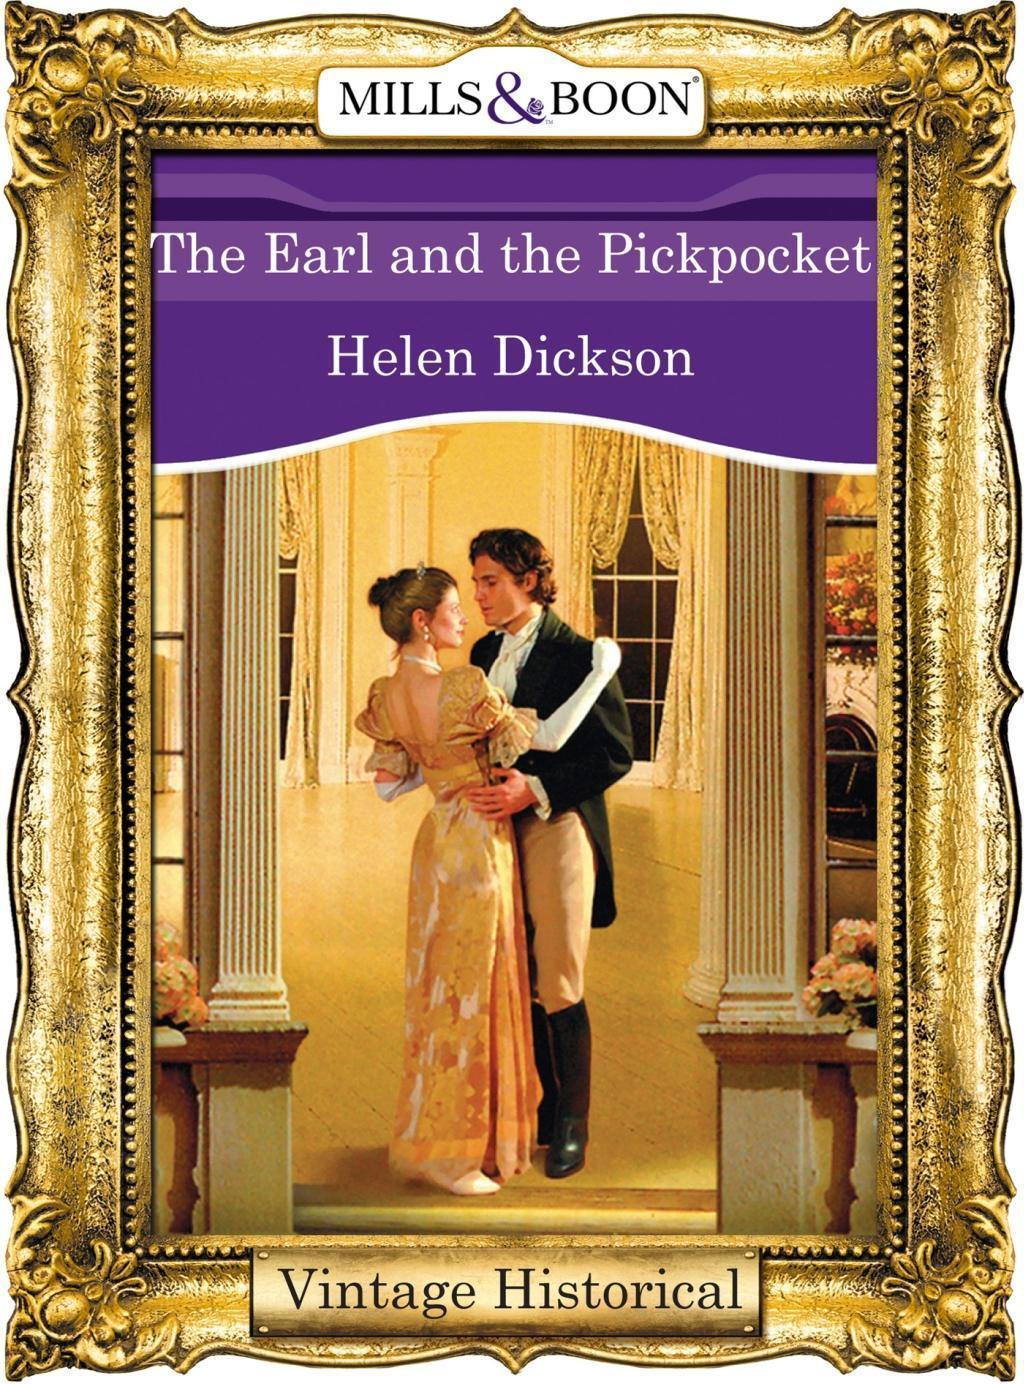 The Earl and the Pickpocket (Mills & Boon Historical)